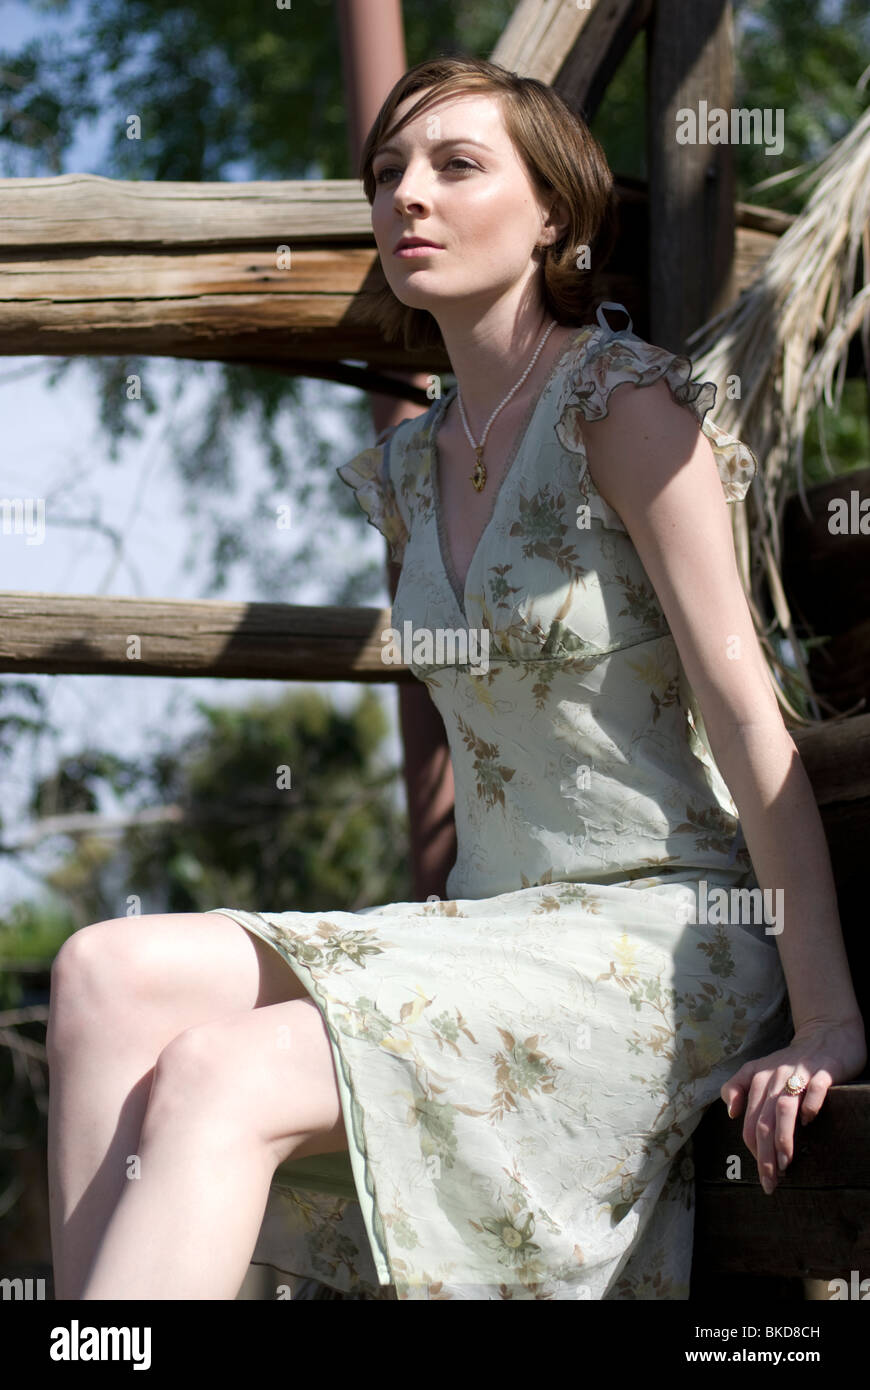 A Beautiful Young Caucasian Woman Sits On Some Old Wooden